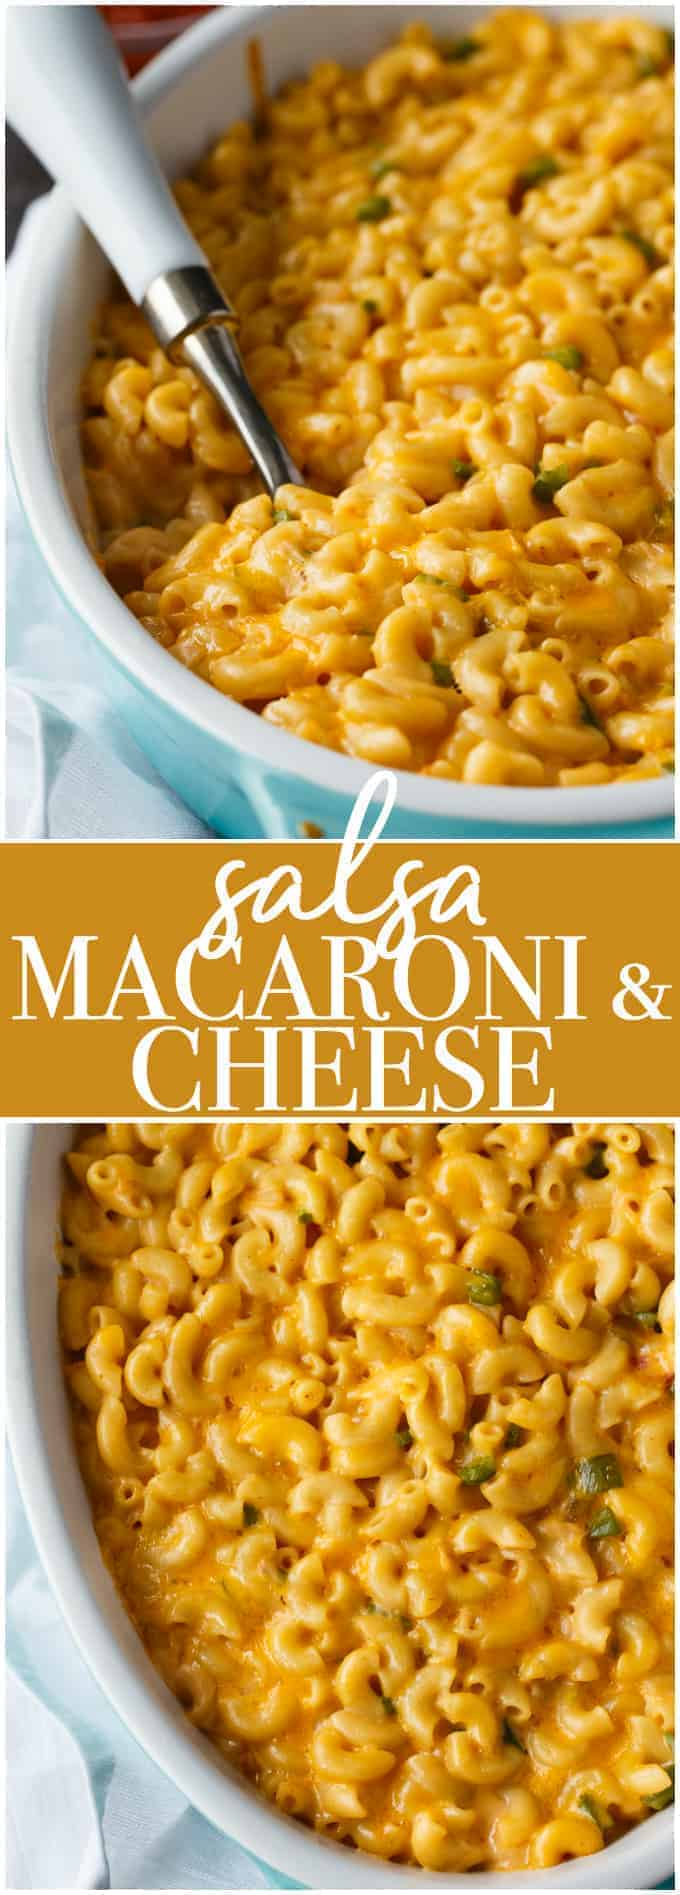 Salsa Macaroni & Cheese - Creamy, cheesy with a bit of a kick! This recipe will easily become a family favourite.